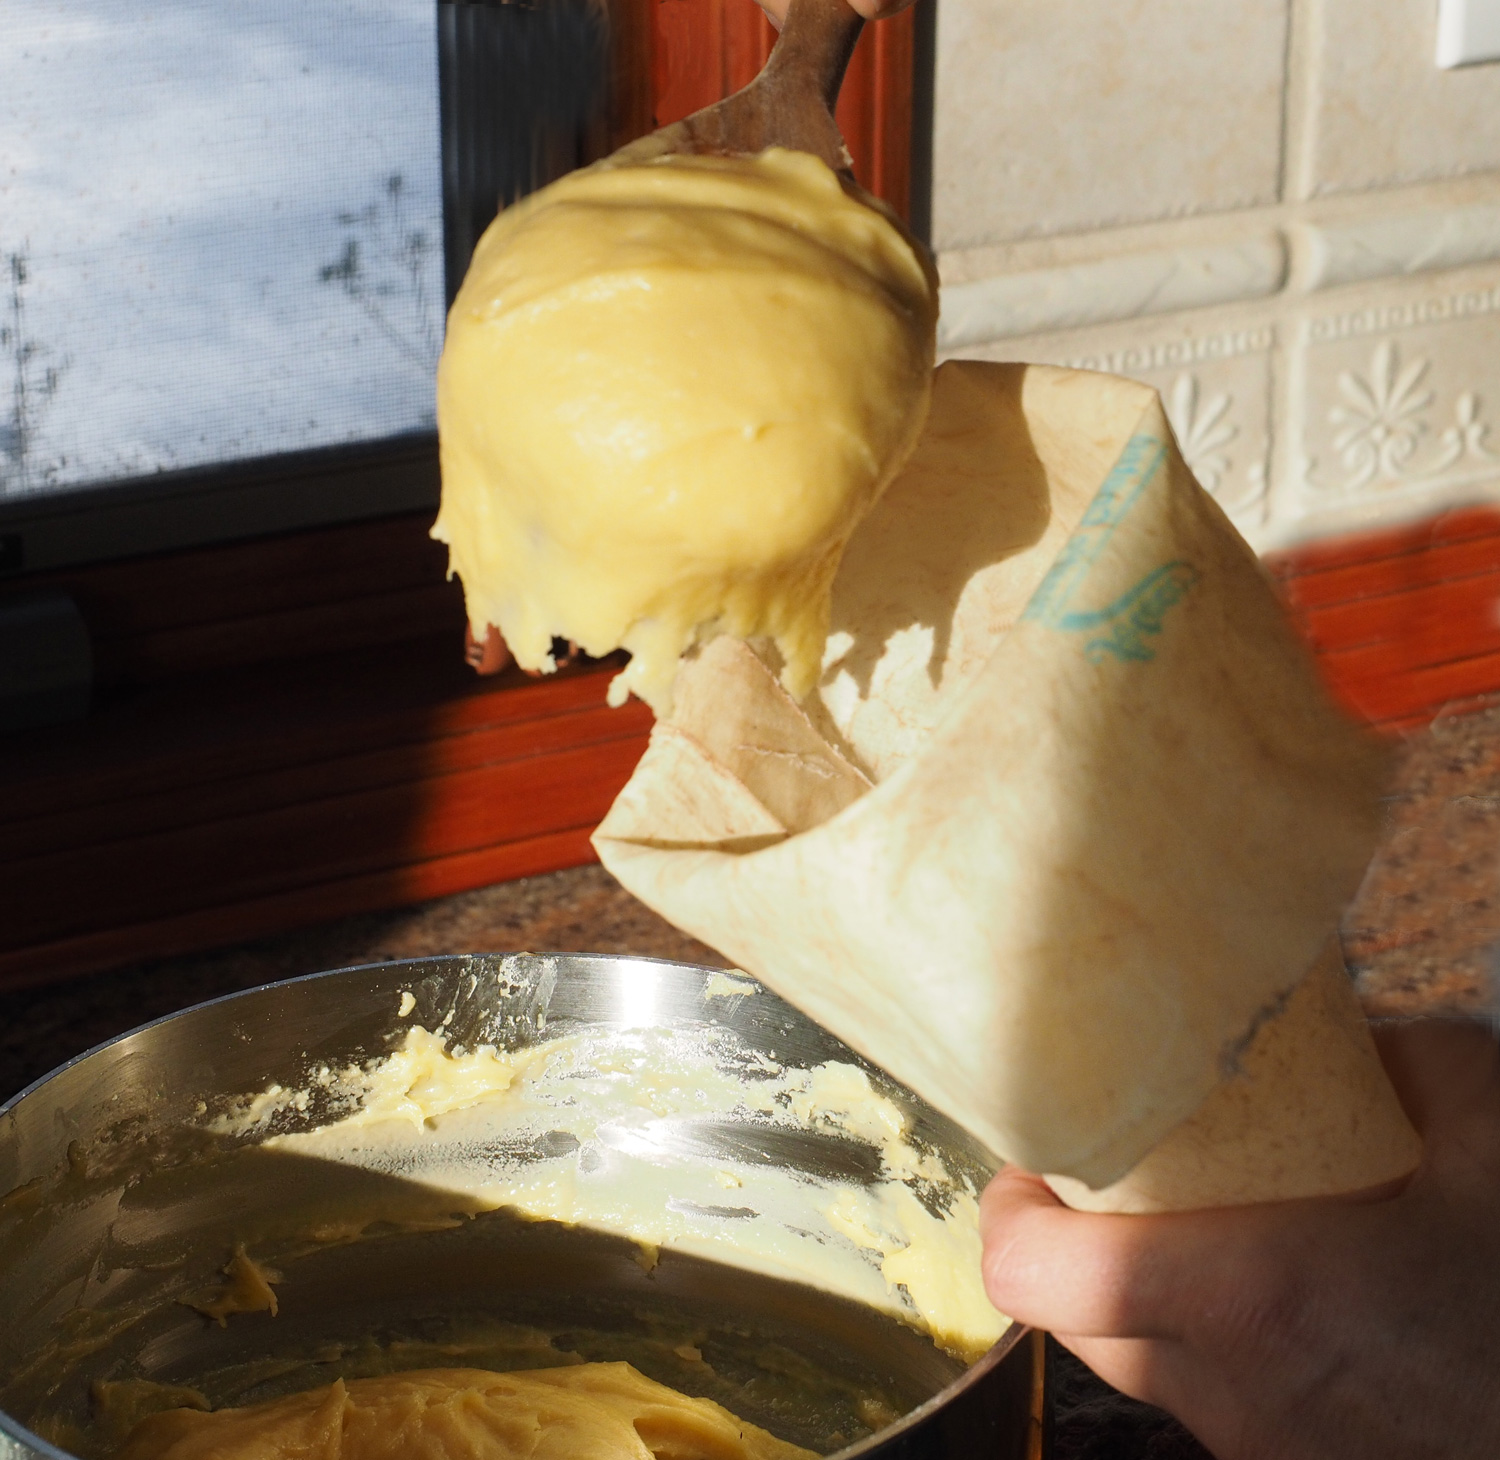 Spoon into piping bag. You can also use a large plastic bag and cut the corner off.